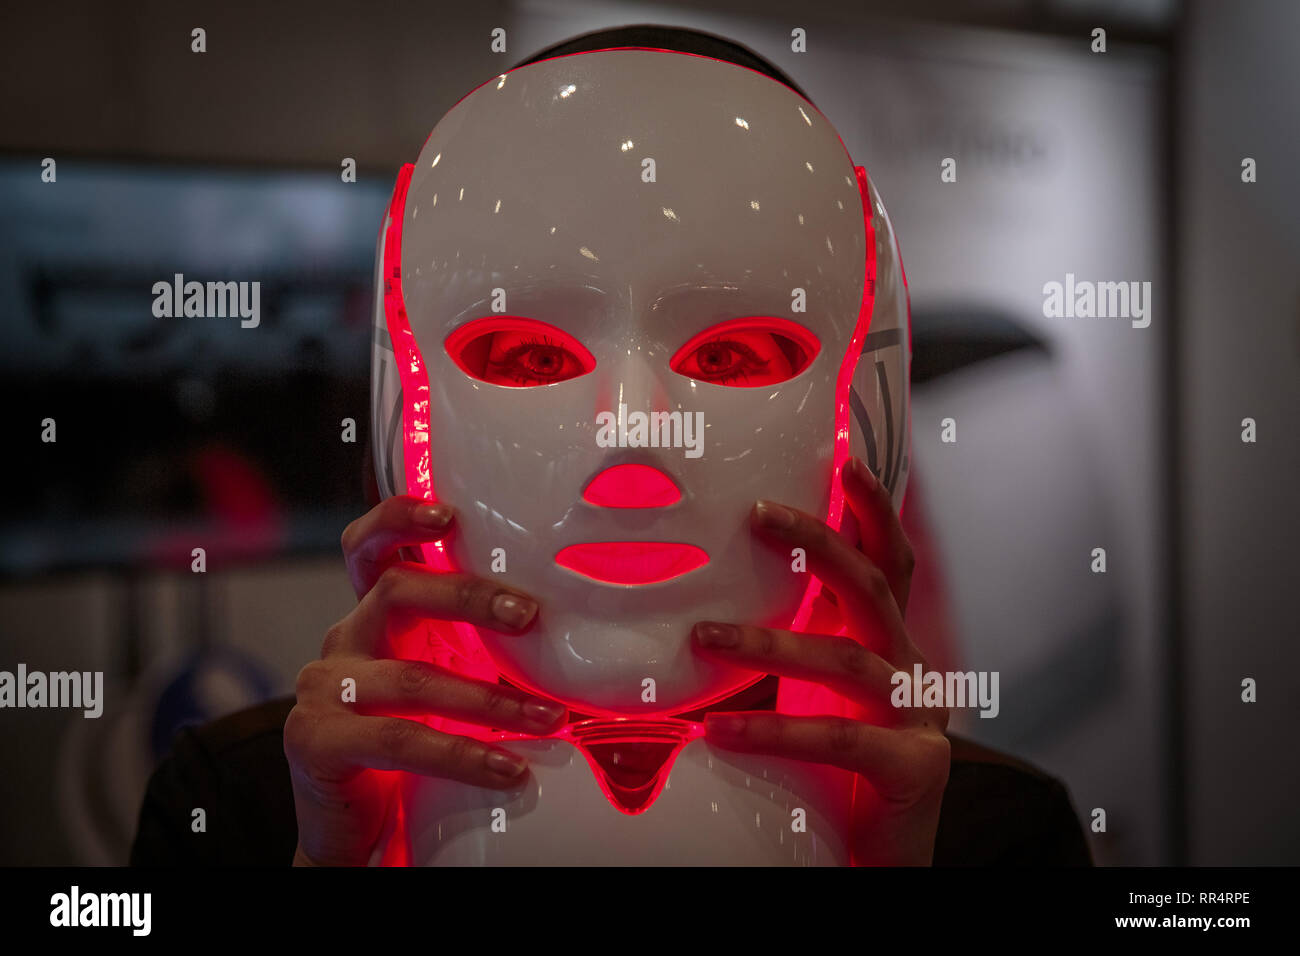 London, UK. 24th Feb, 2019. Infrared skin rejuvenation LED phototherapy facemask technology. LED bulbs set at varying colour temperatures promote blood circulation and anti-aging effect. Professional Beauty London Expo at Excel Centre, the UK's biggest beauty and spa trade show. Credit: Guy Corbishley/Alamy Live News - Stock Image